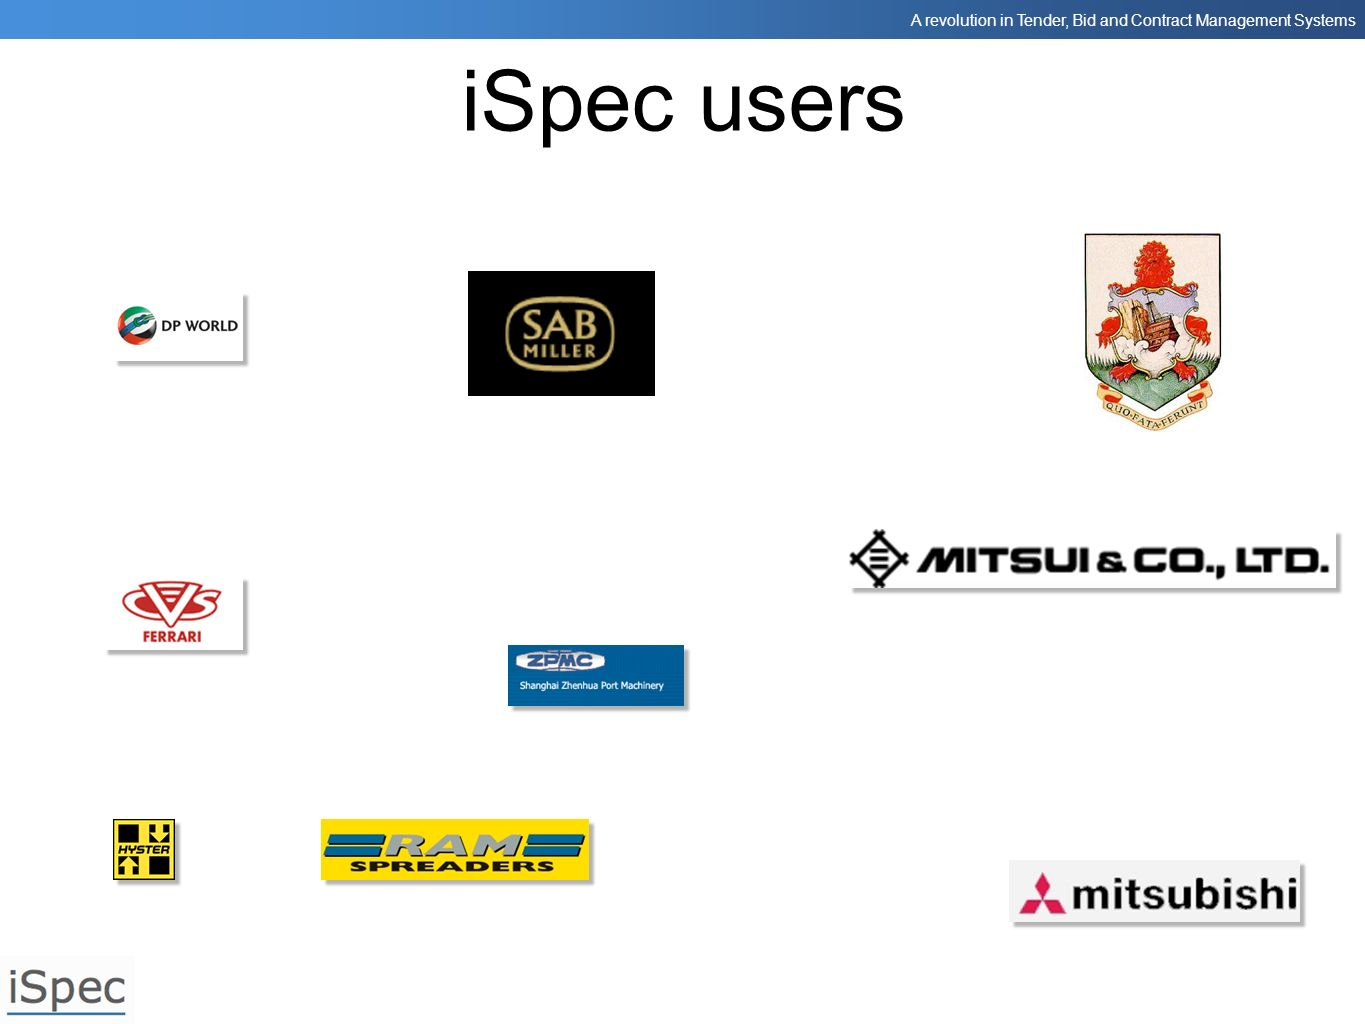 iSpec users These are some of the companies that use iSpec.